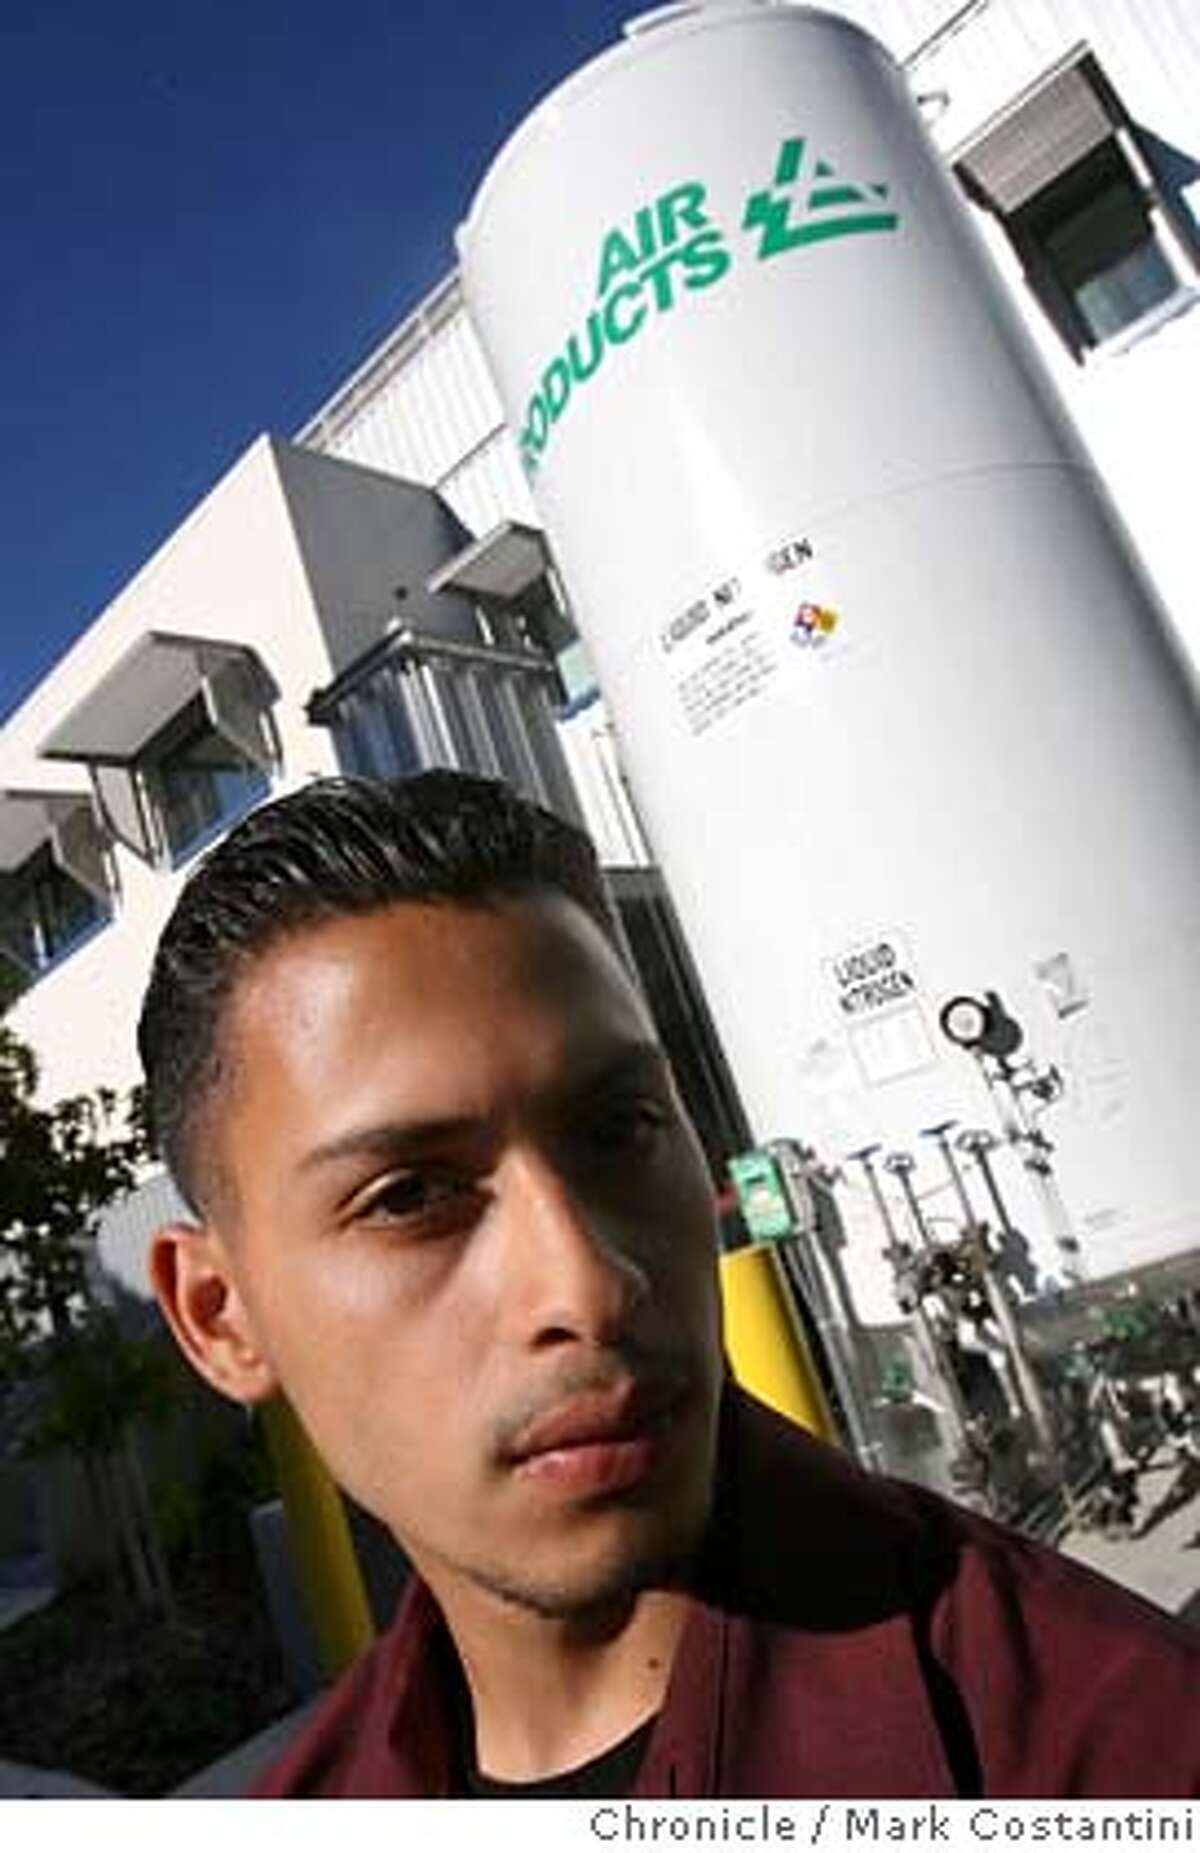 Jesus Hernandez at the building at Bayer that he did his research in. For a story about disadvantaged kids who have a shot at biotechnology jobs after participating in an internship/training program run by the non-profit organization , Biotech Partners. With poster presentations, the kids showcased the projects they worked on during summer internships, at an event Wednesday hosted by at Bayer Healthcare in Berkeley, Photo: Mark Costantini / S.F. Chronicle